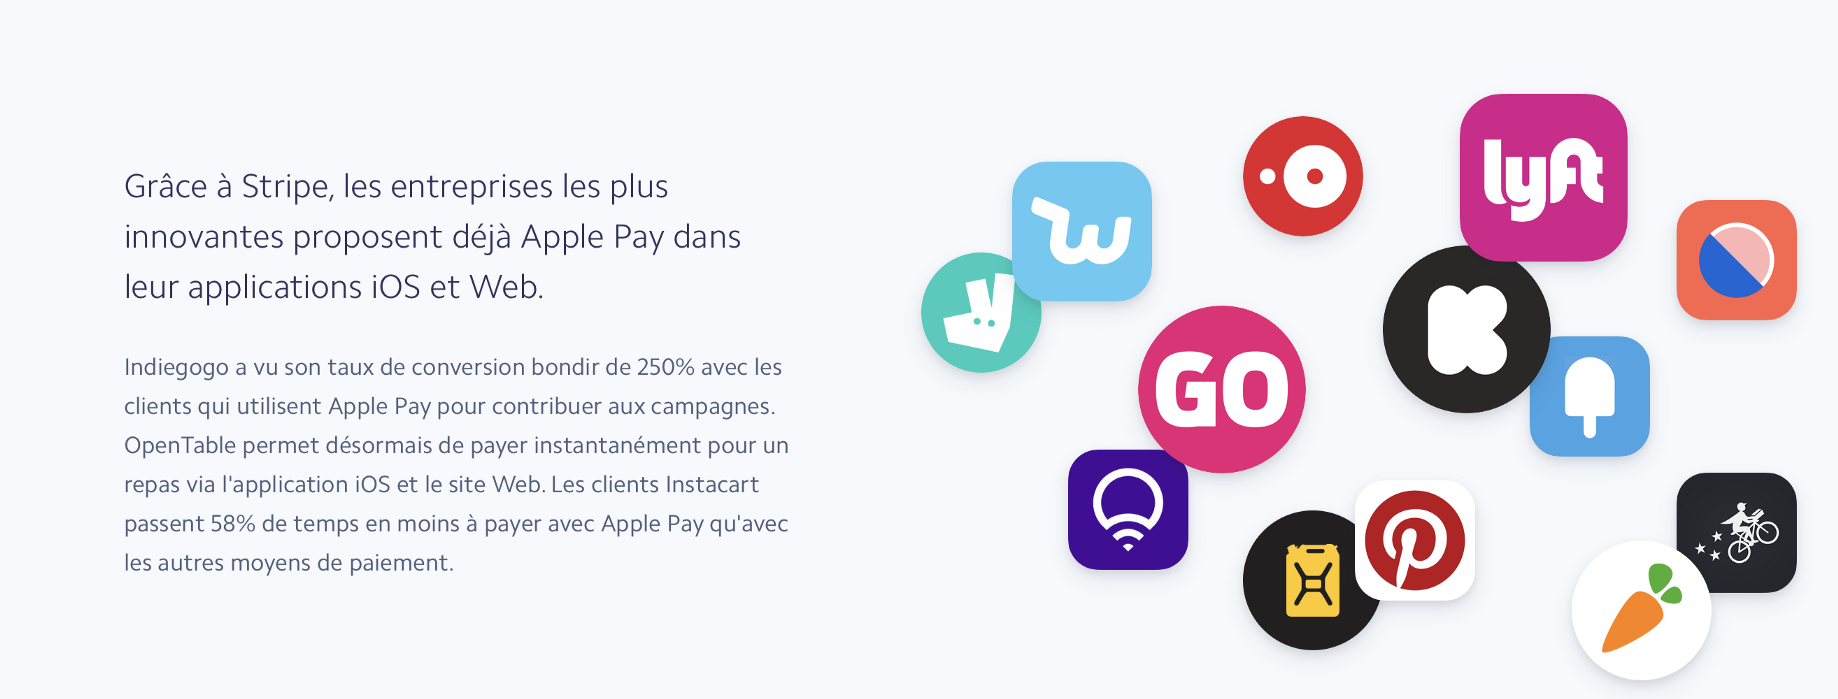 Testing Apple Pay on the web with Stripe - Clément Sauvage - Medium